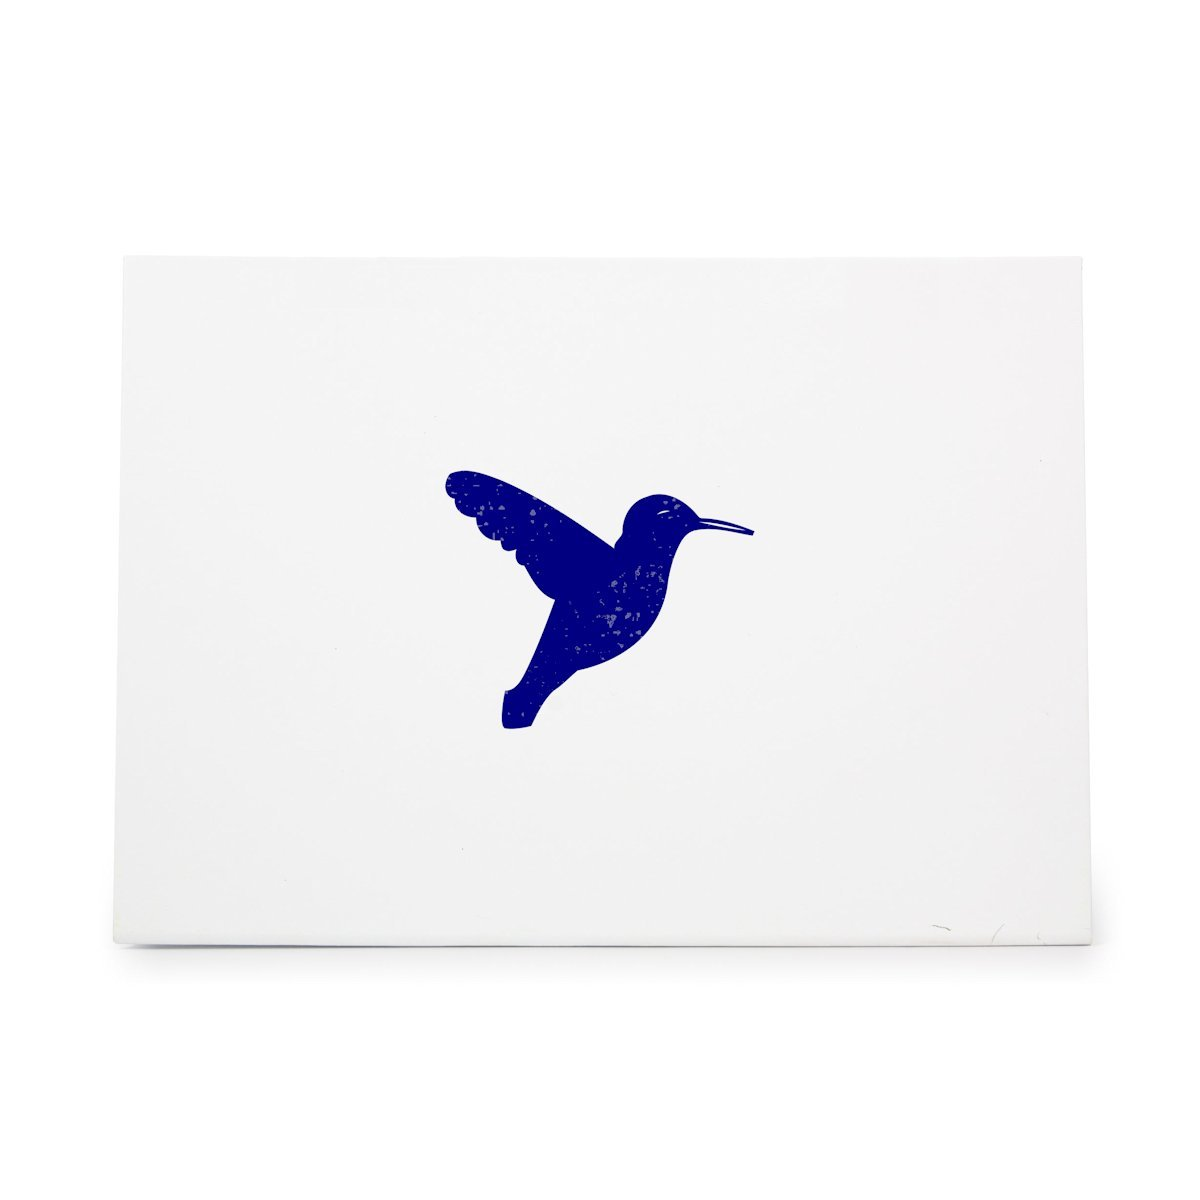 Hummingbird Animal Bird Fast Flight Style 11348 Card Making Ink Stamping Crafts Crafts Rubber Stamp Shape great for Scrapbooking